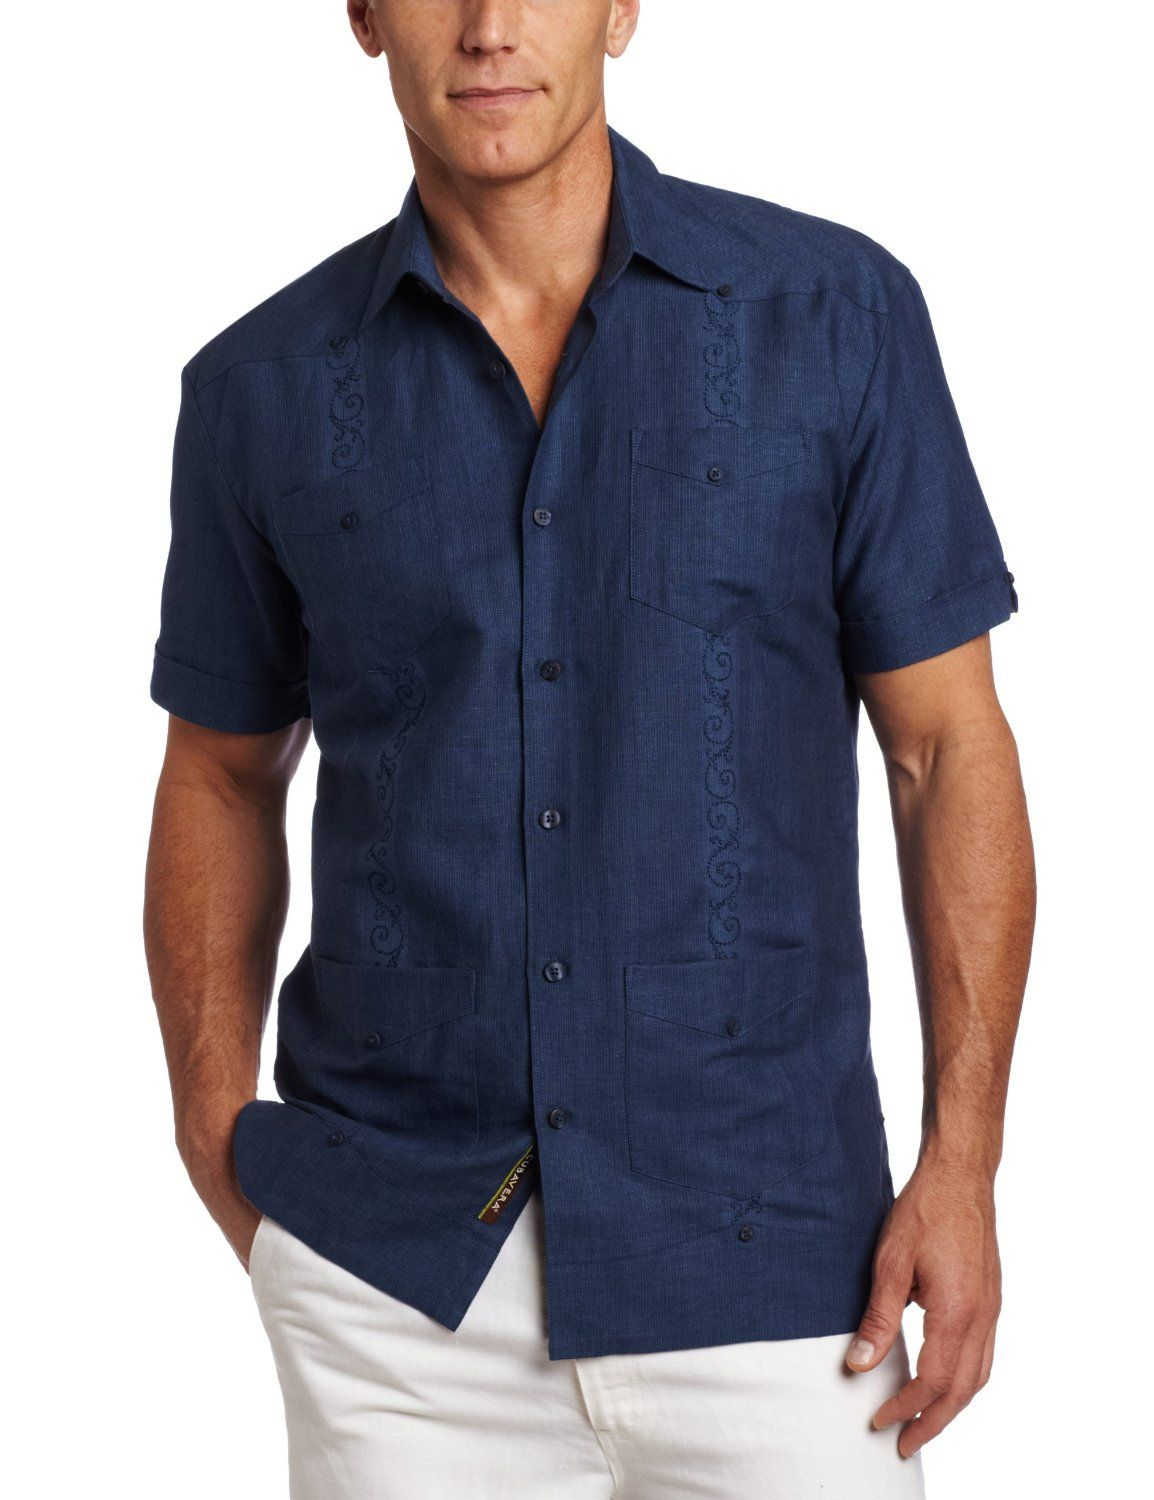 8ca6d84ea9 Amazon.com  Cubavera Men s Short Sleeve Stripe Guayabera Shirt ...